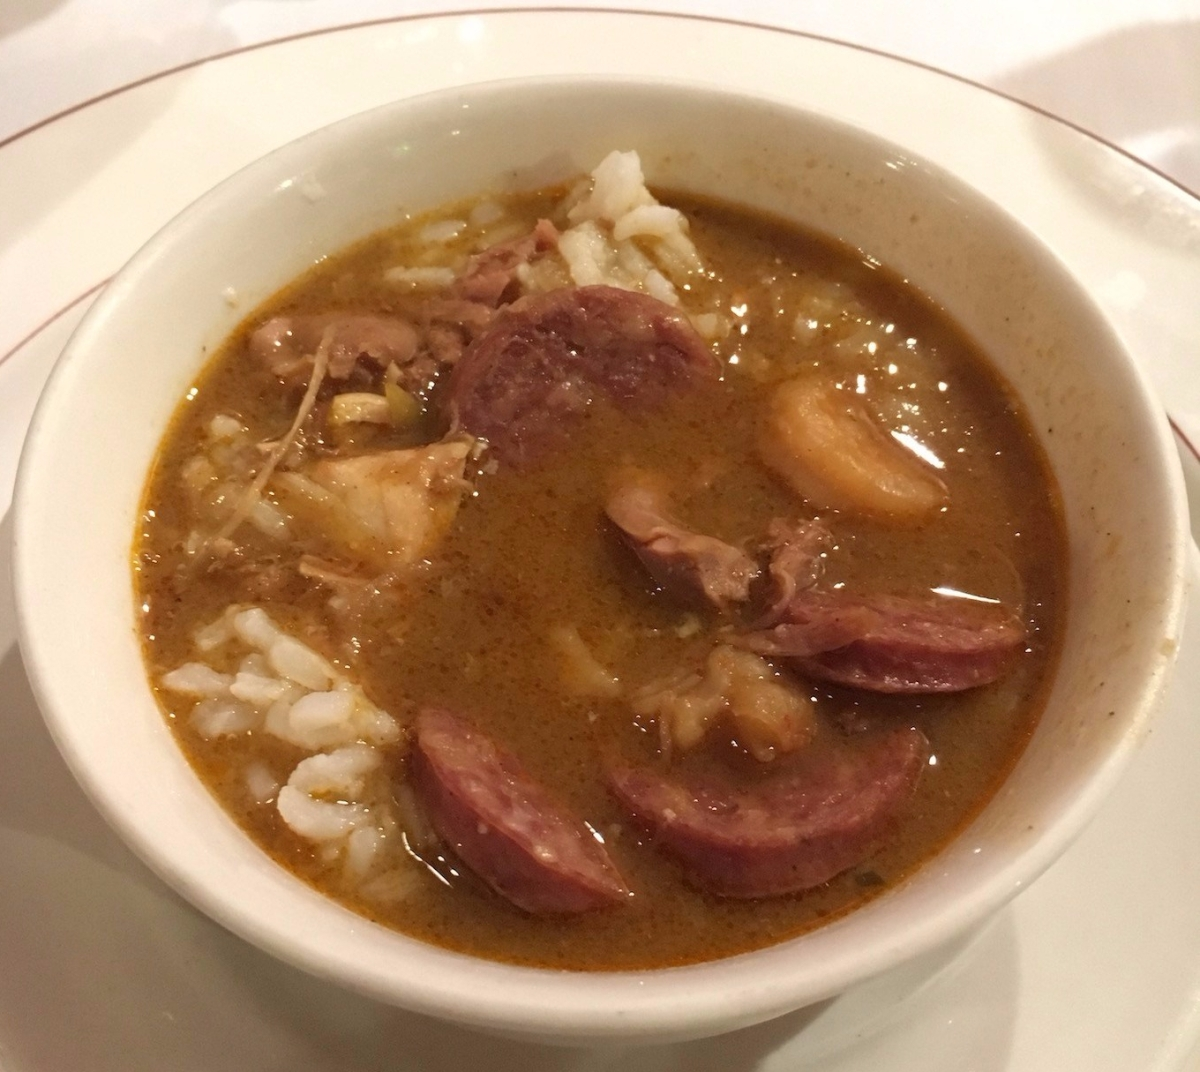 Taste The Gumbo That Fueled A Revolution